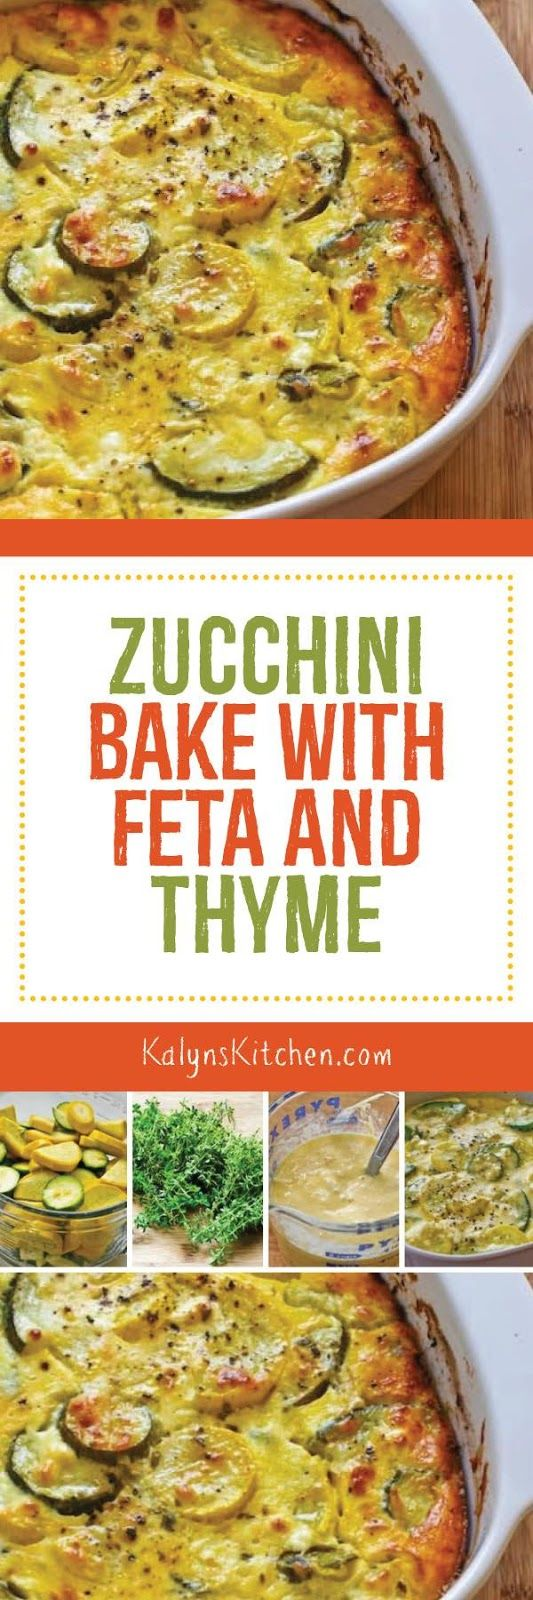 Zucchini Bake with Feta and Thyme | Pandora jewelry ...